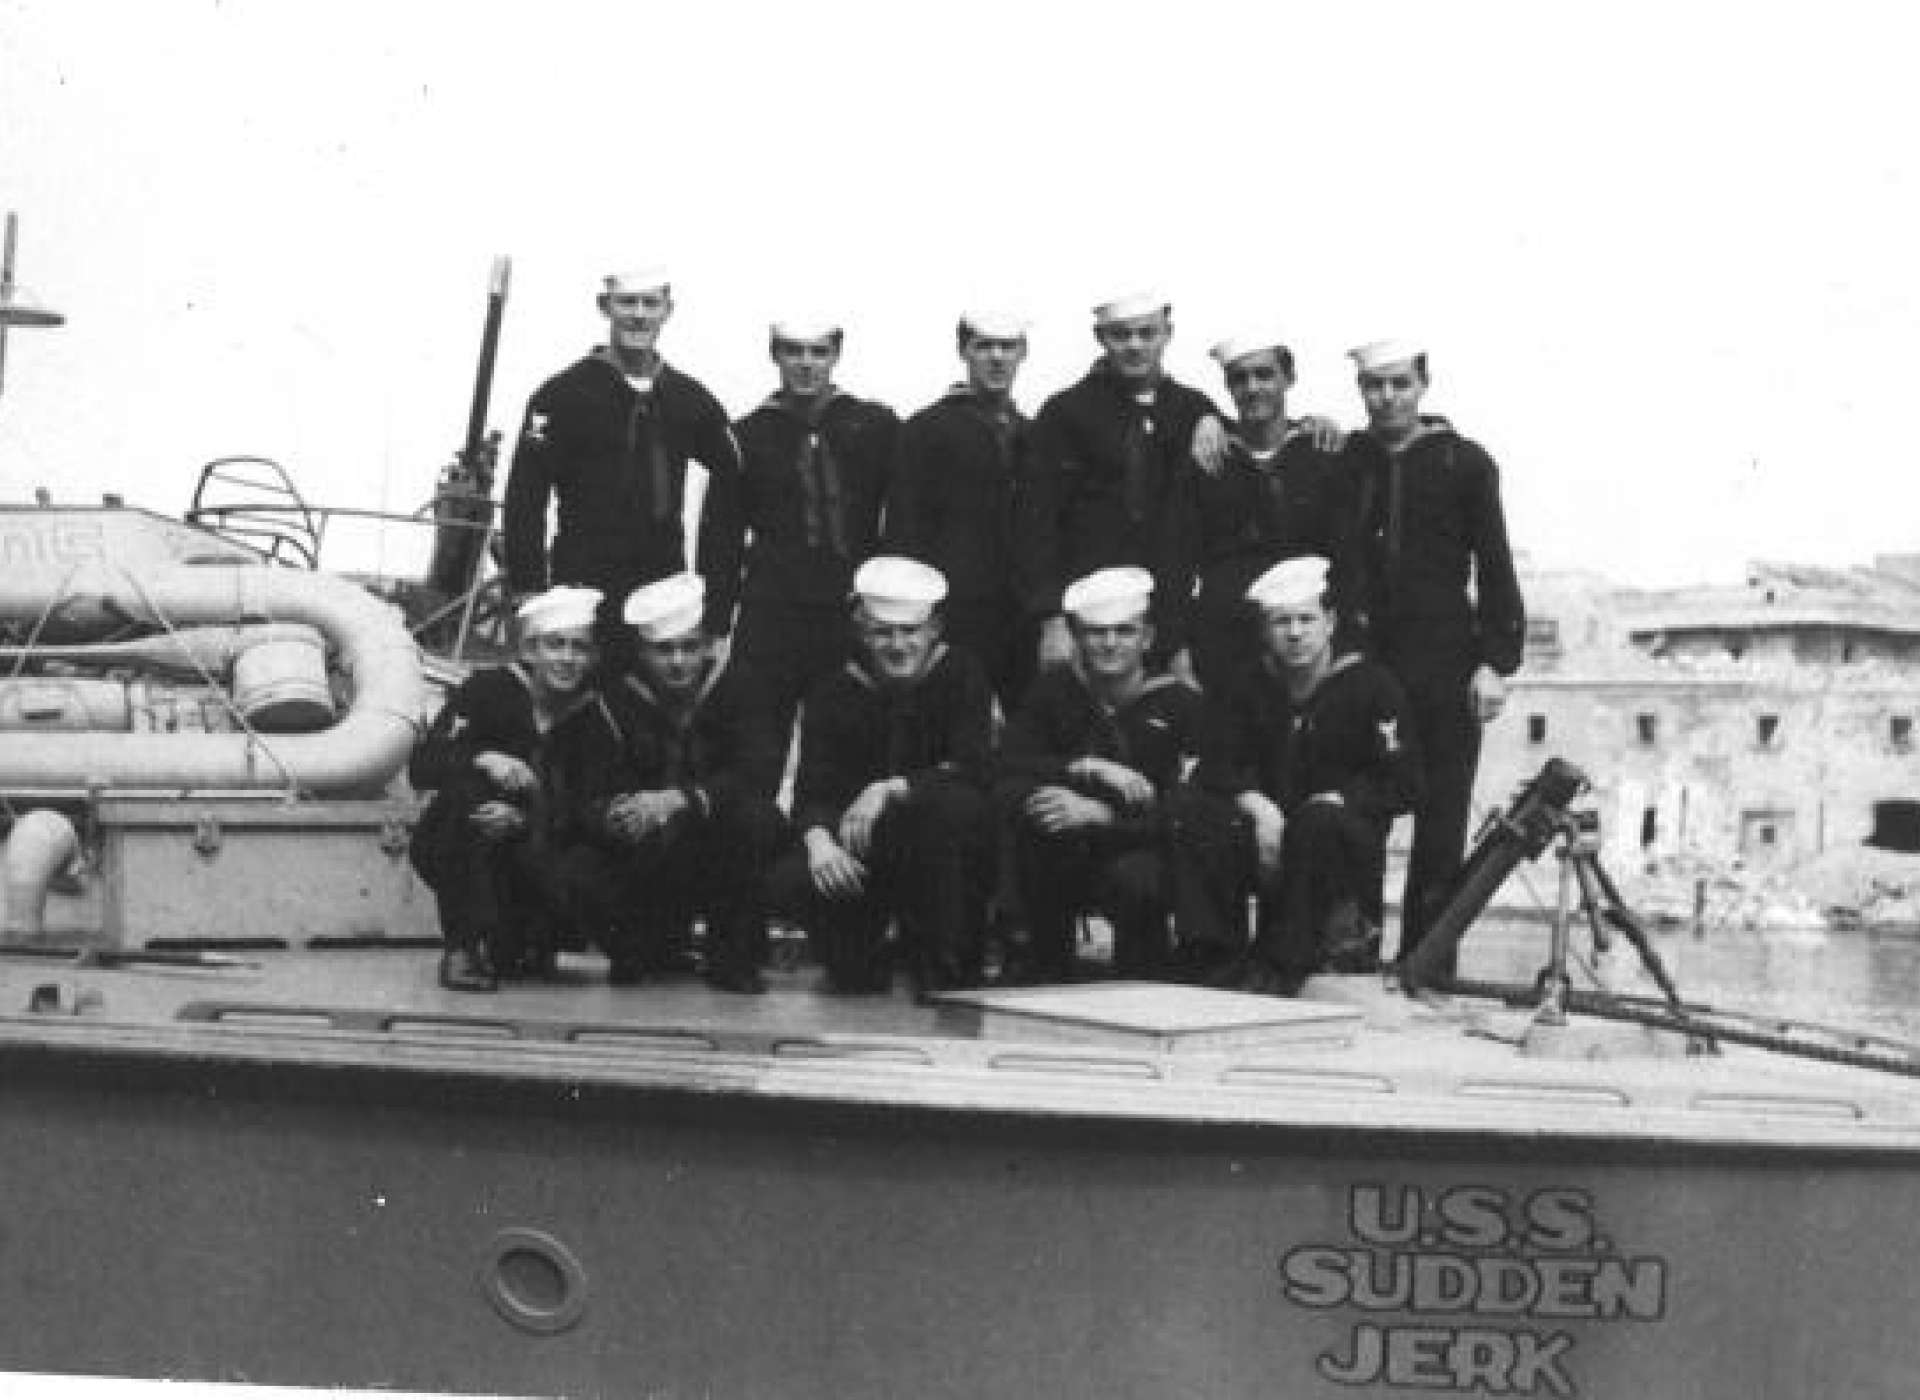 PT-305: A service-era photo showing one of the custom portholes.